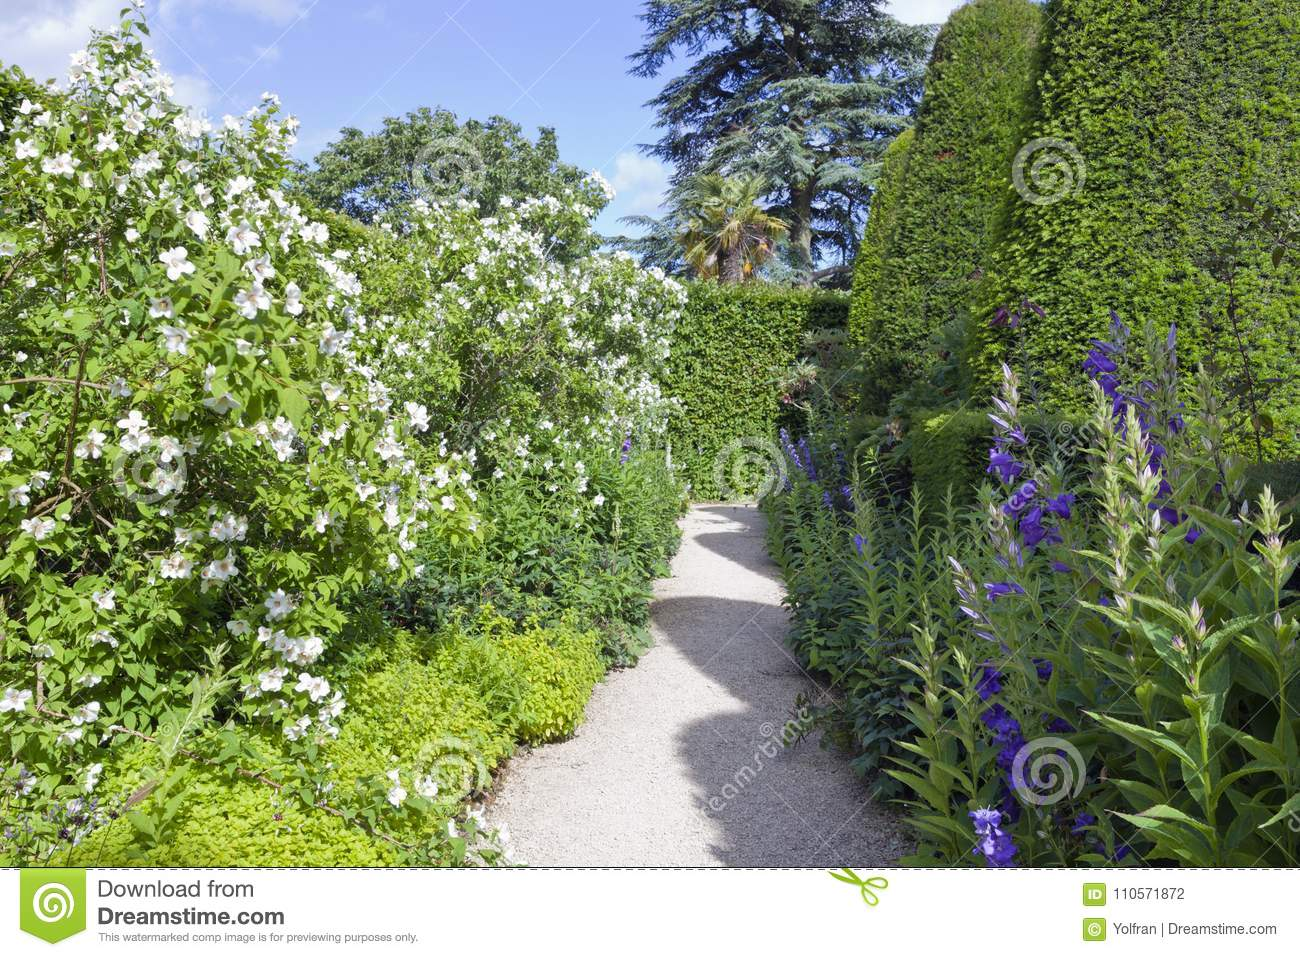 Lush Landscaped Garden With White Flowers Topiary Trees Stock Photo